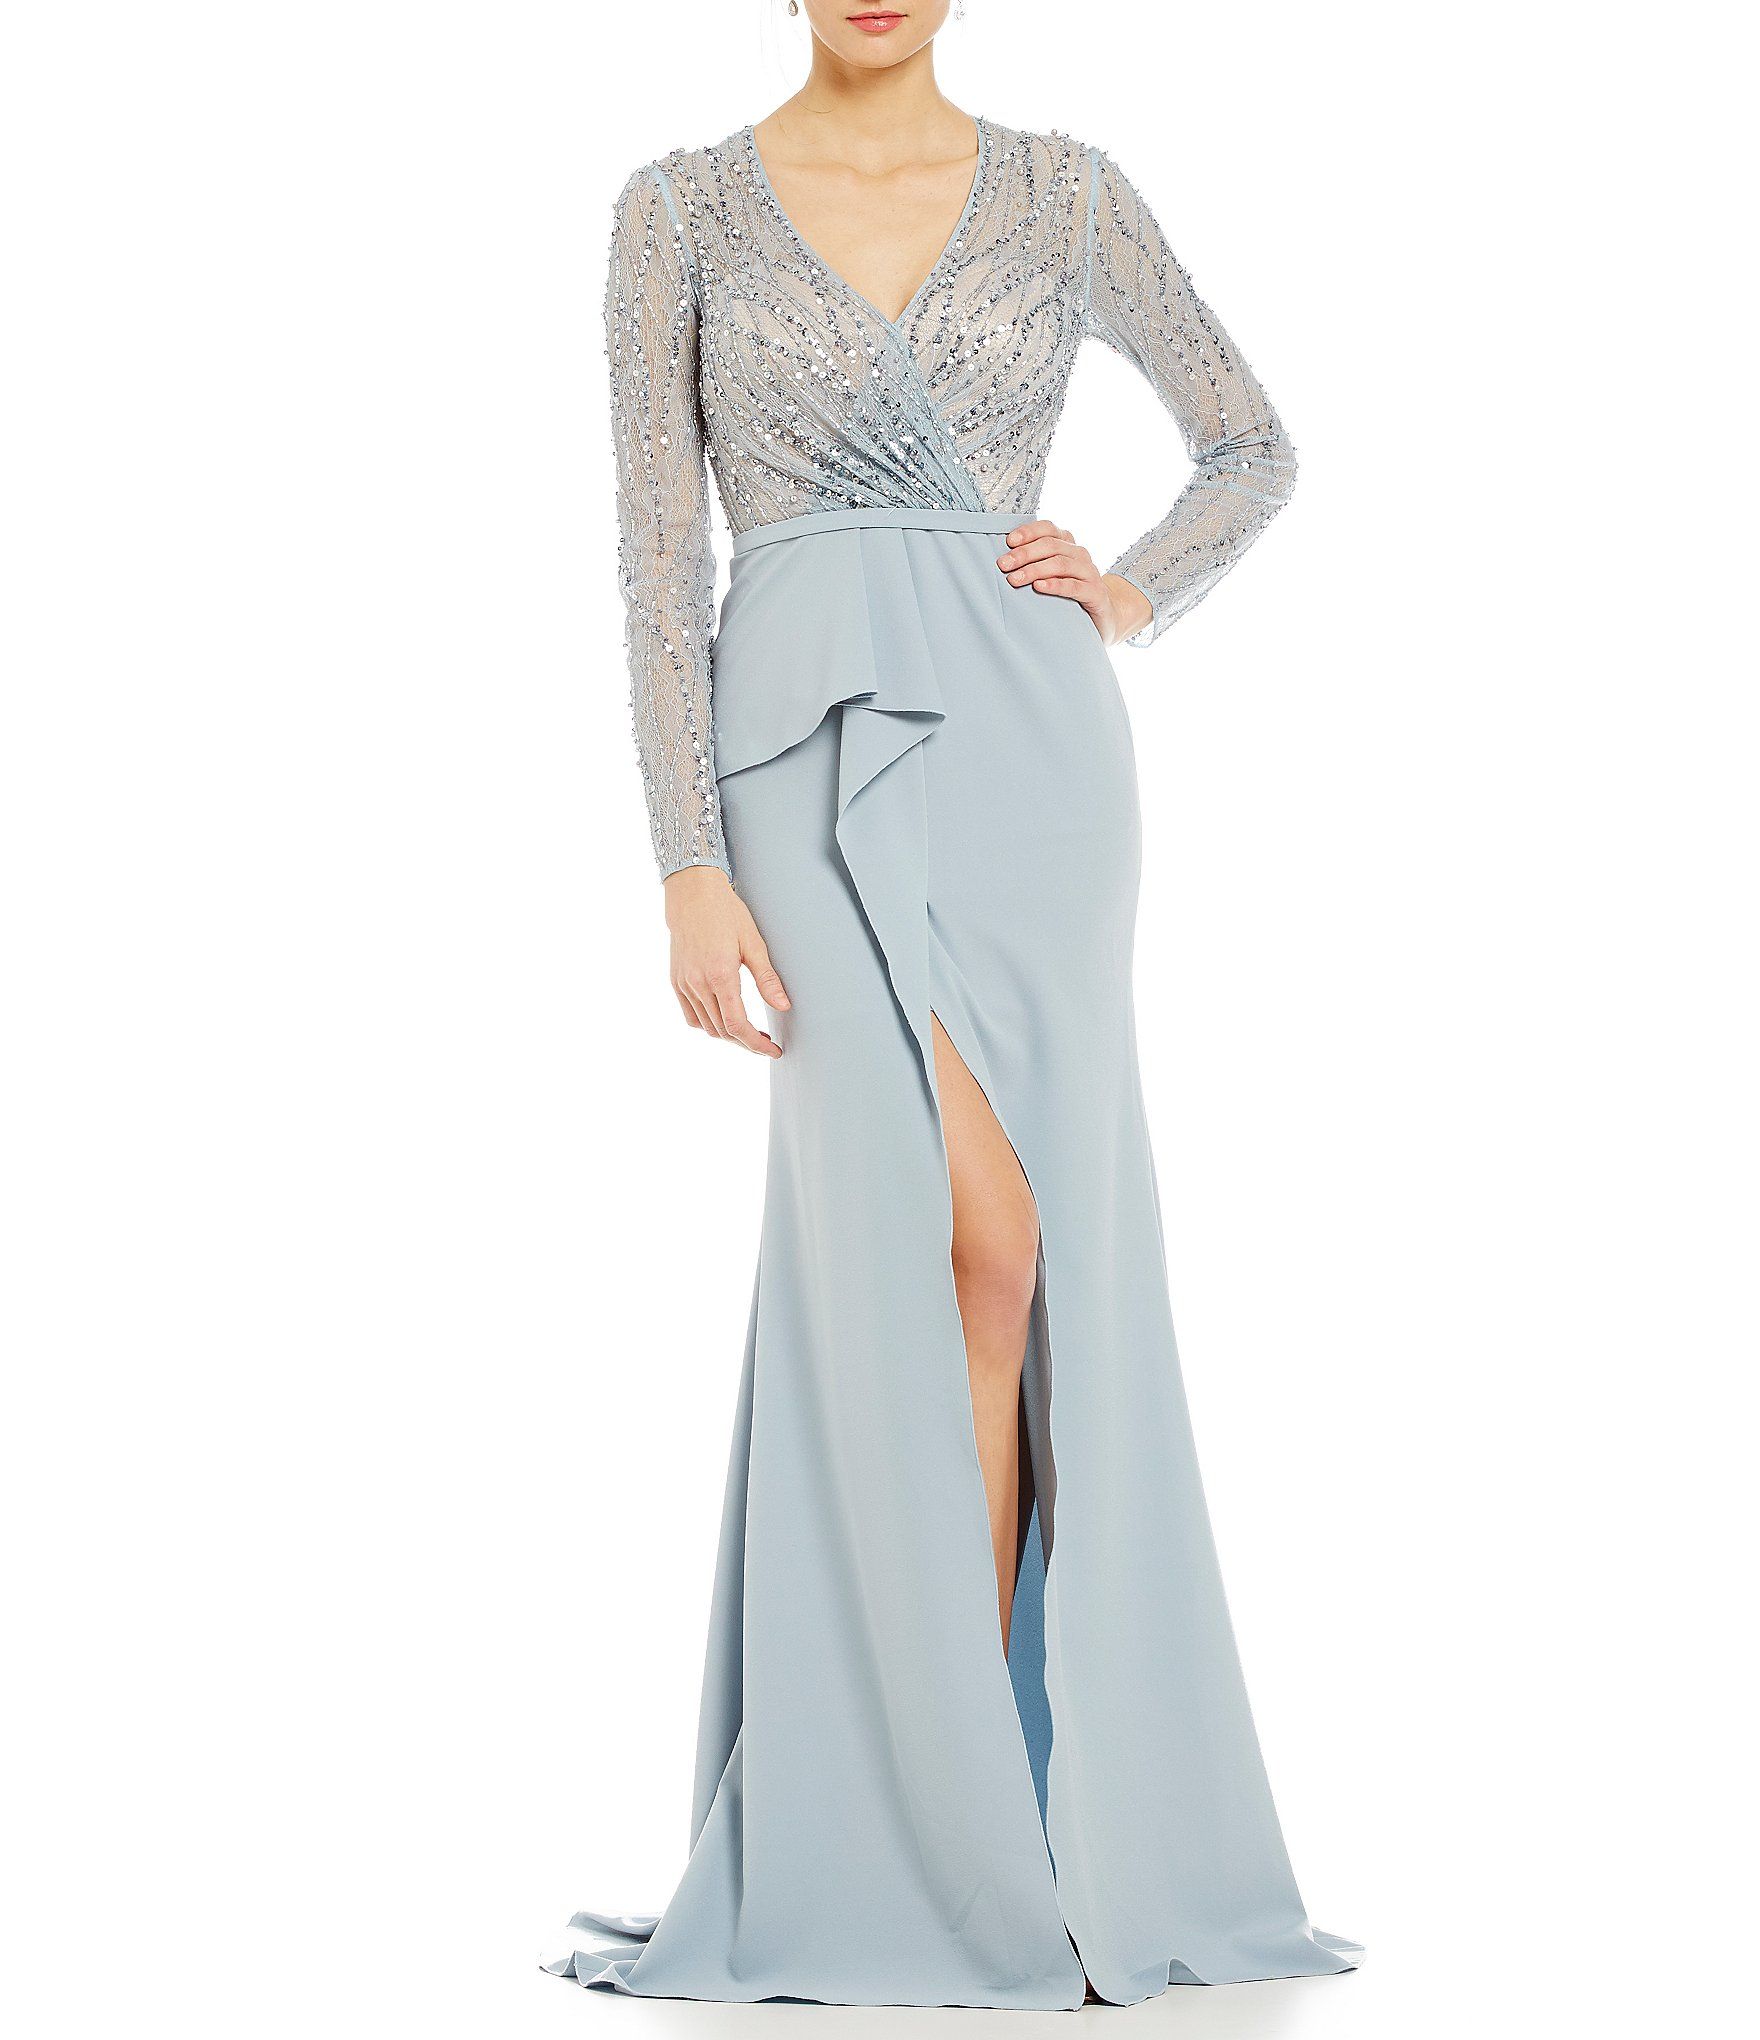 Women\'s Formal Dresses & Evening Gowns | Dillards